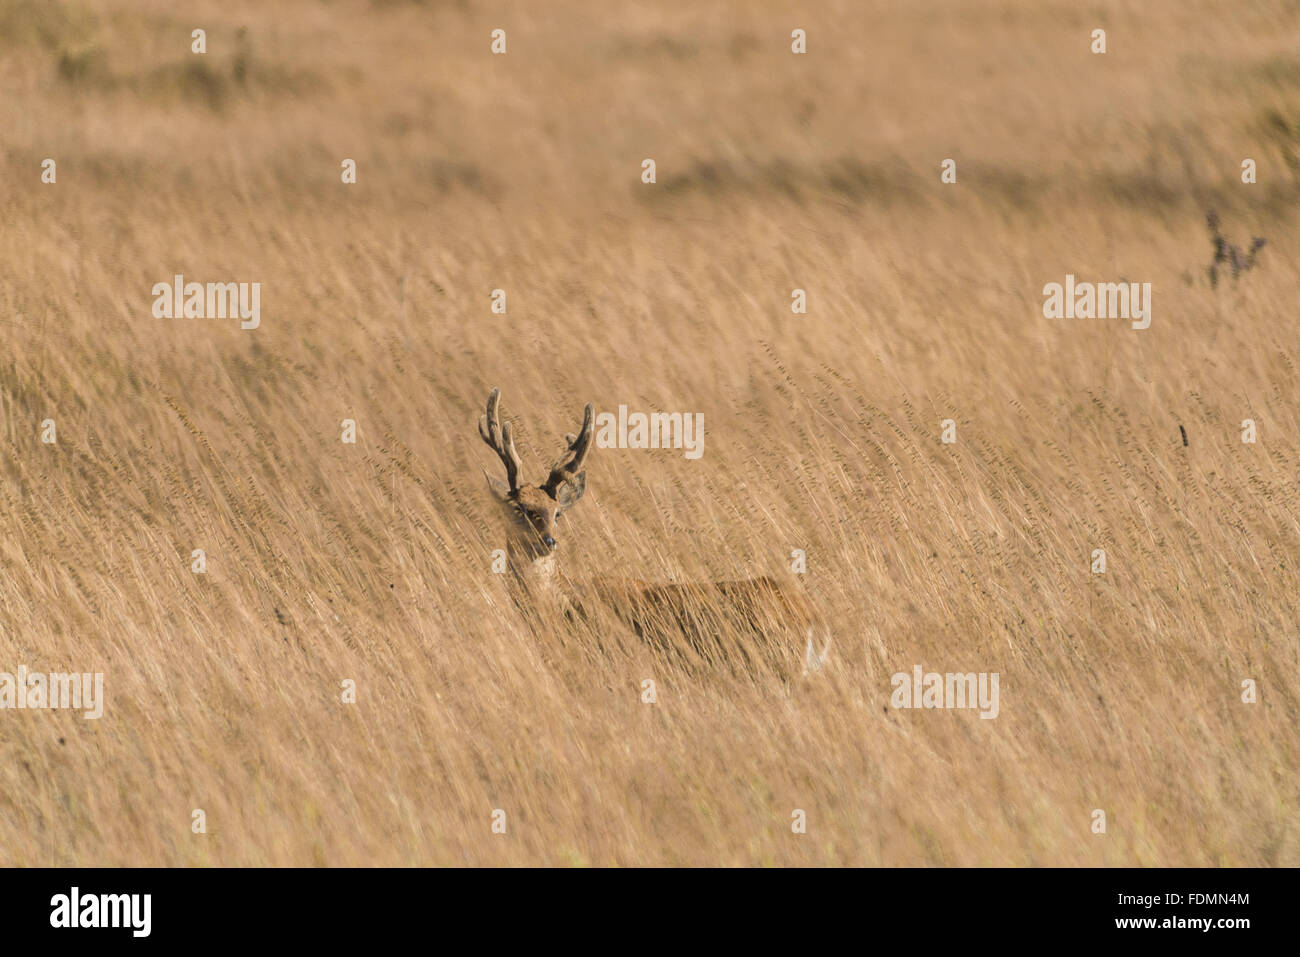 Pampas deer in the Serra da Canastra National Park - Stock Image